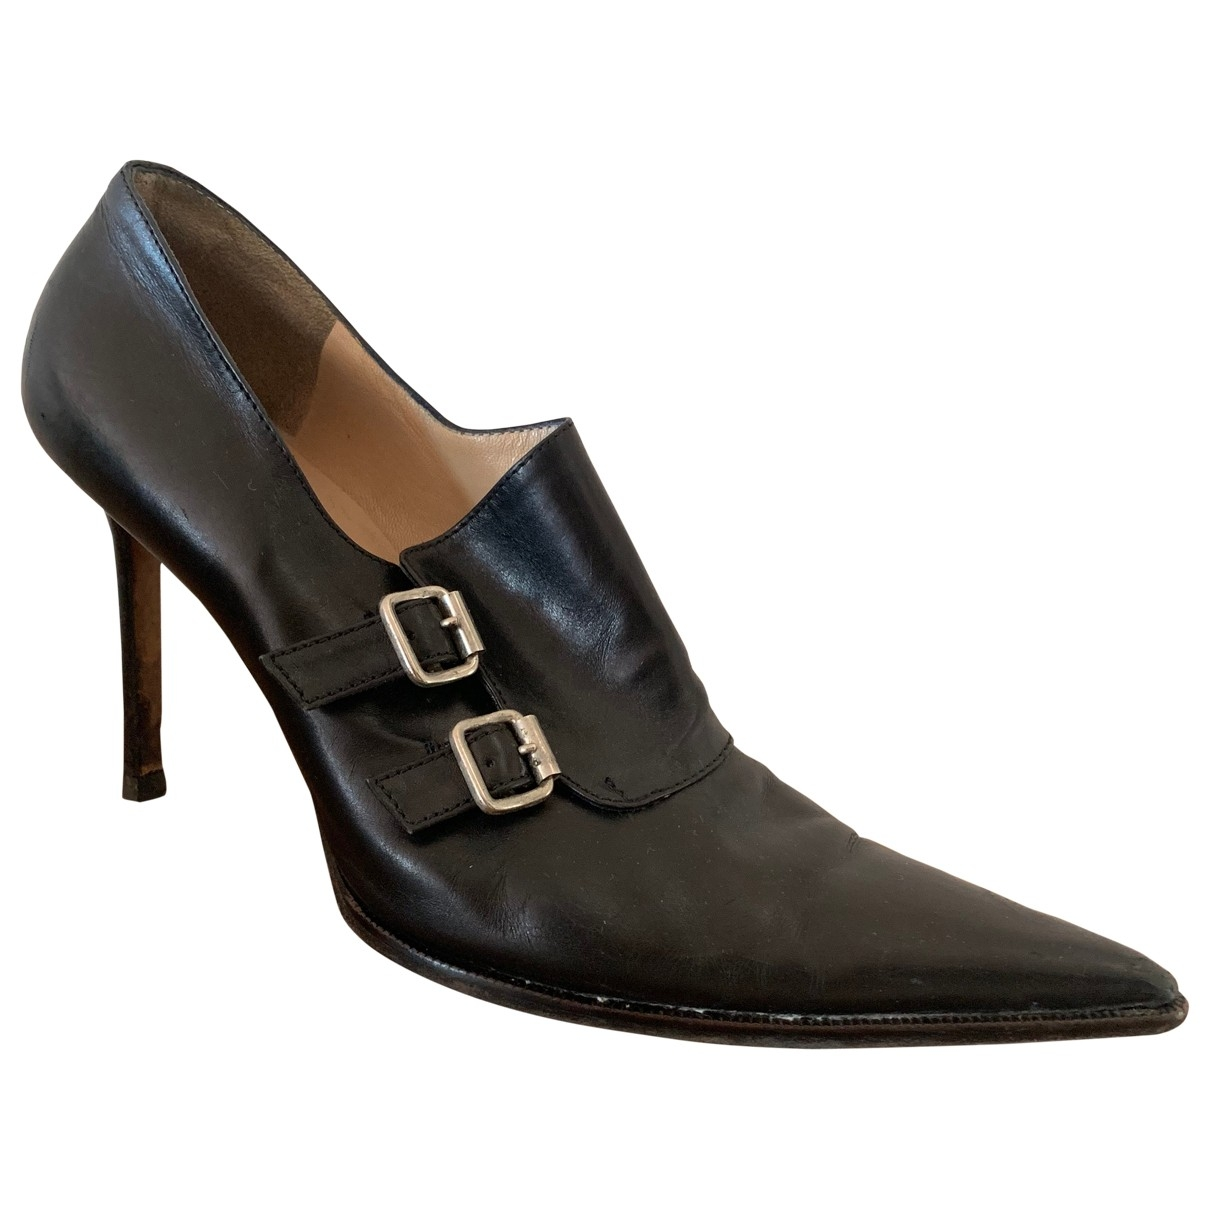 Michael Kors \N Black Leather Ankle boots for Women 8.5 US